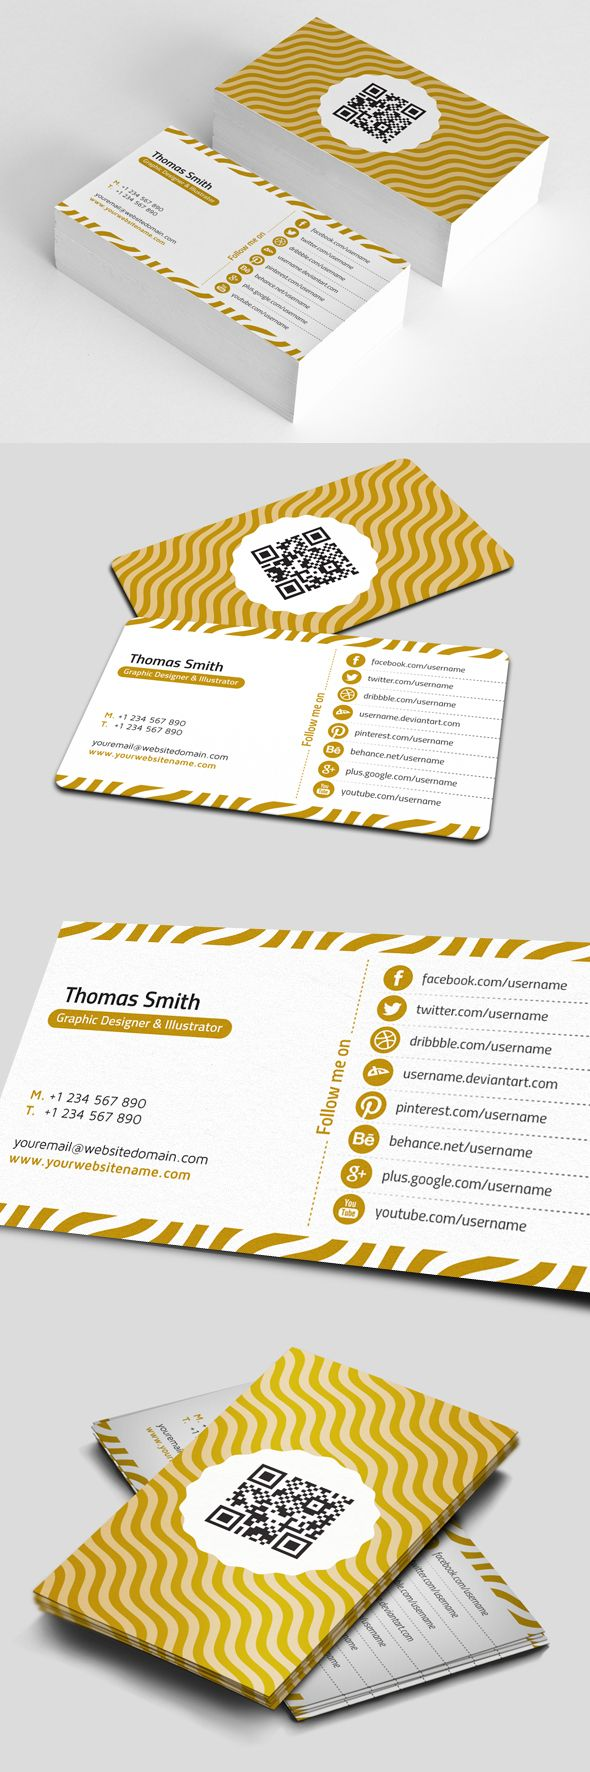 images about dise ntilde os personal business card